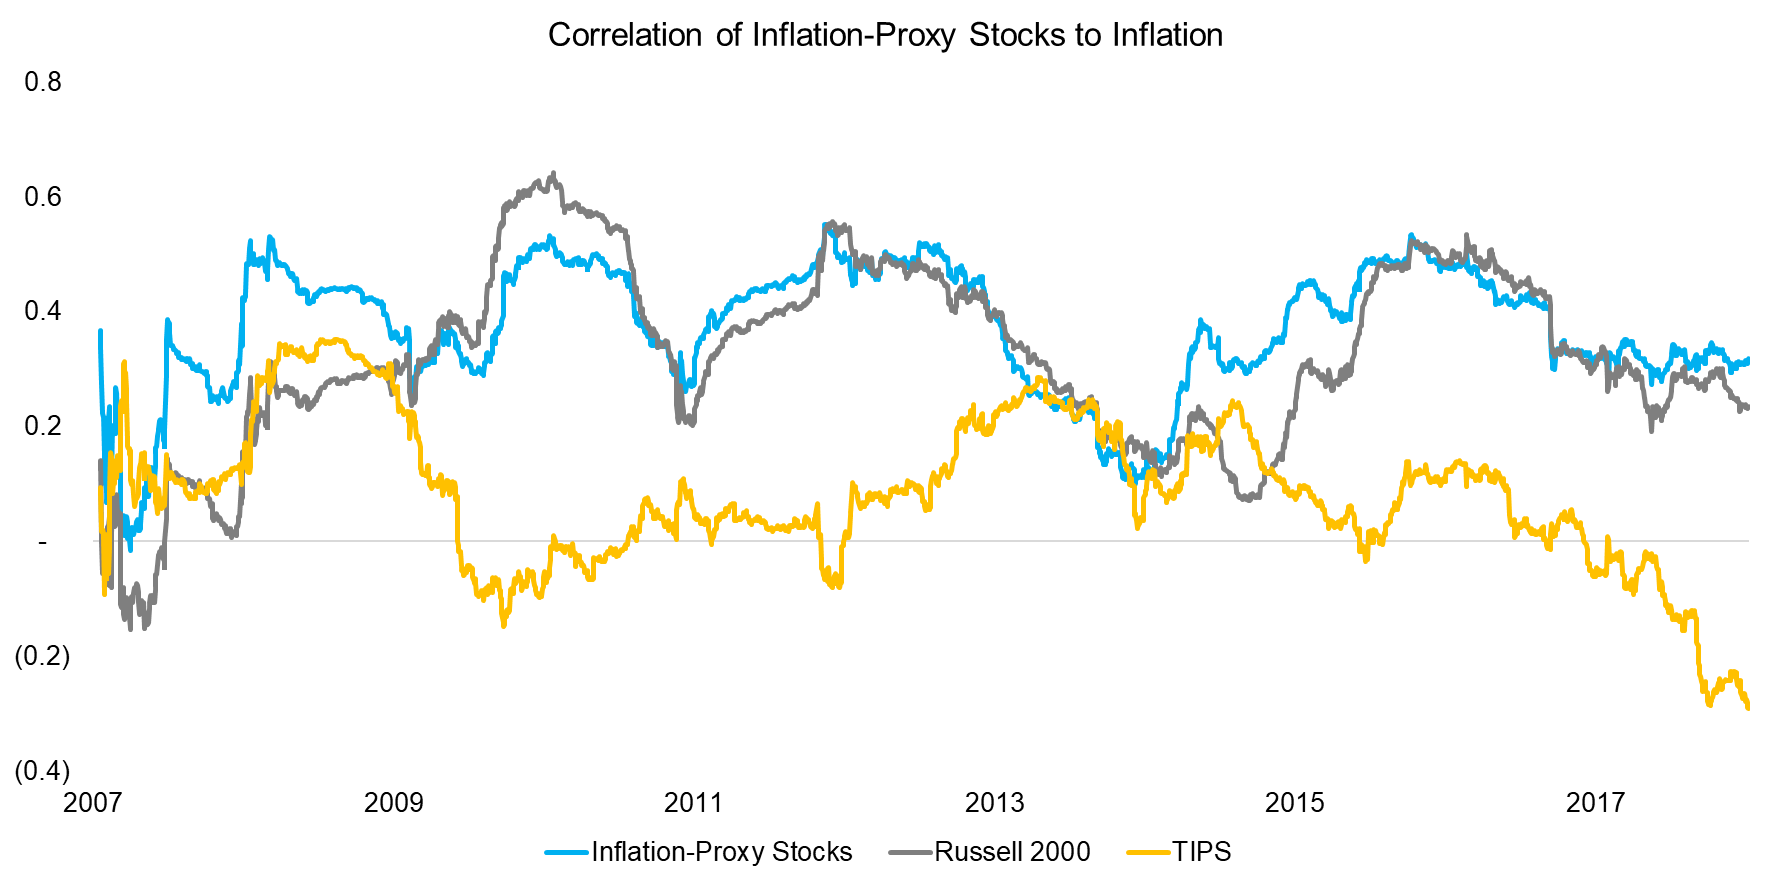 Correlation of Inflation-Proxy Stocks to Inflation